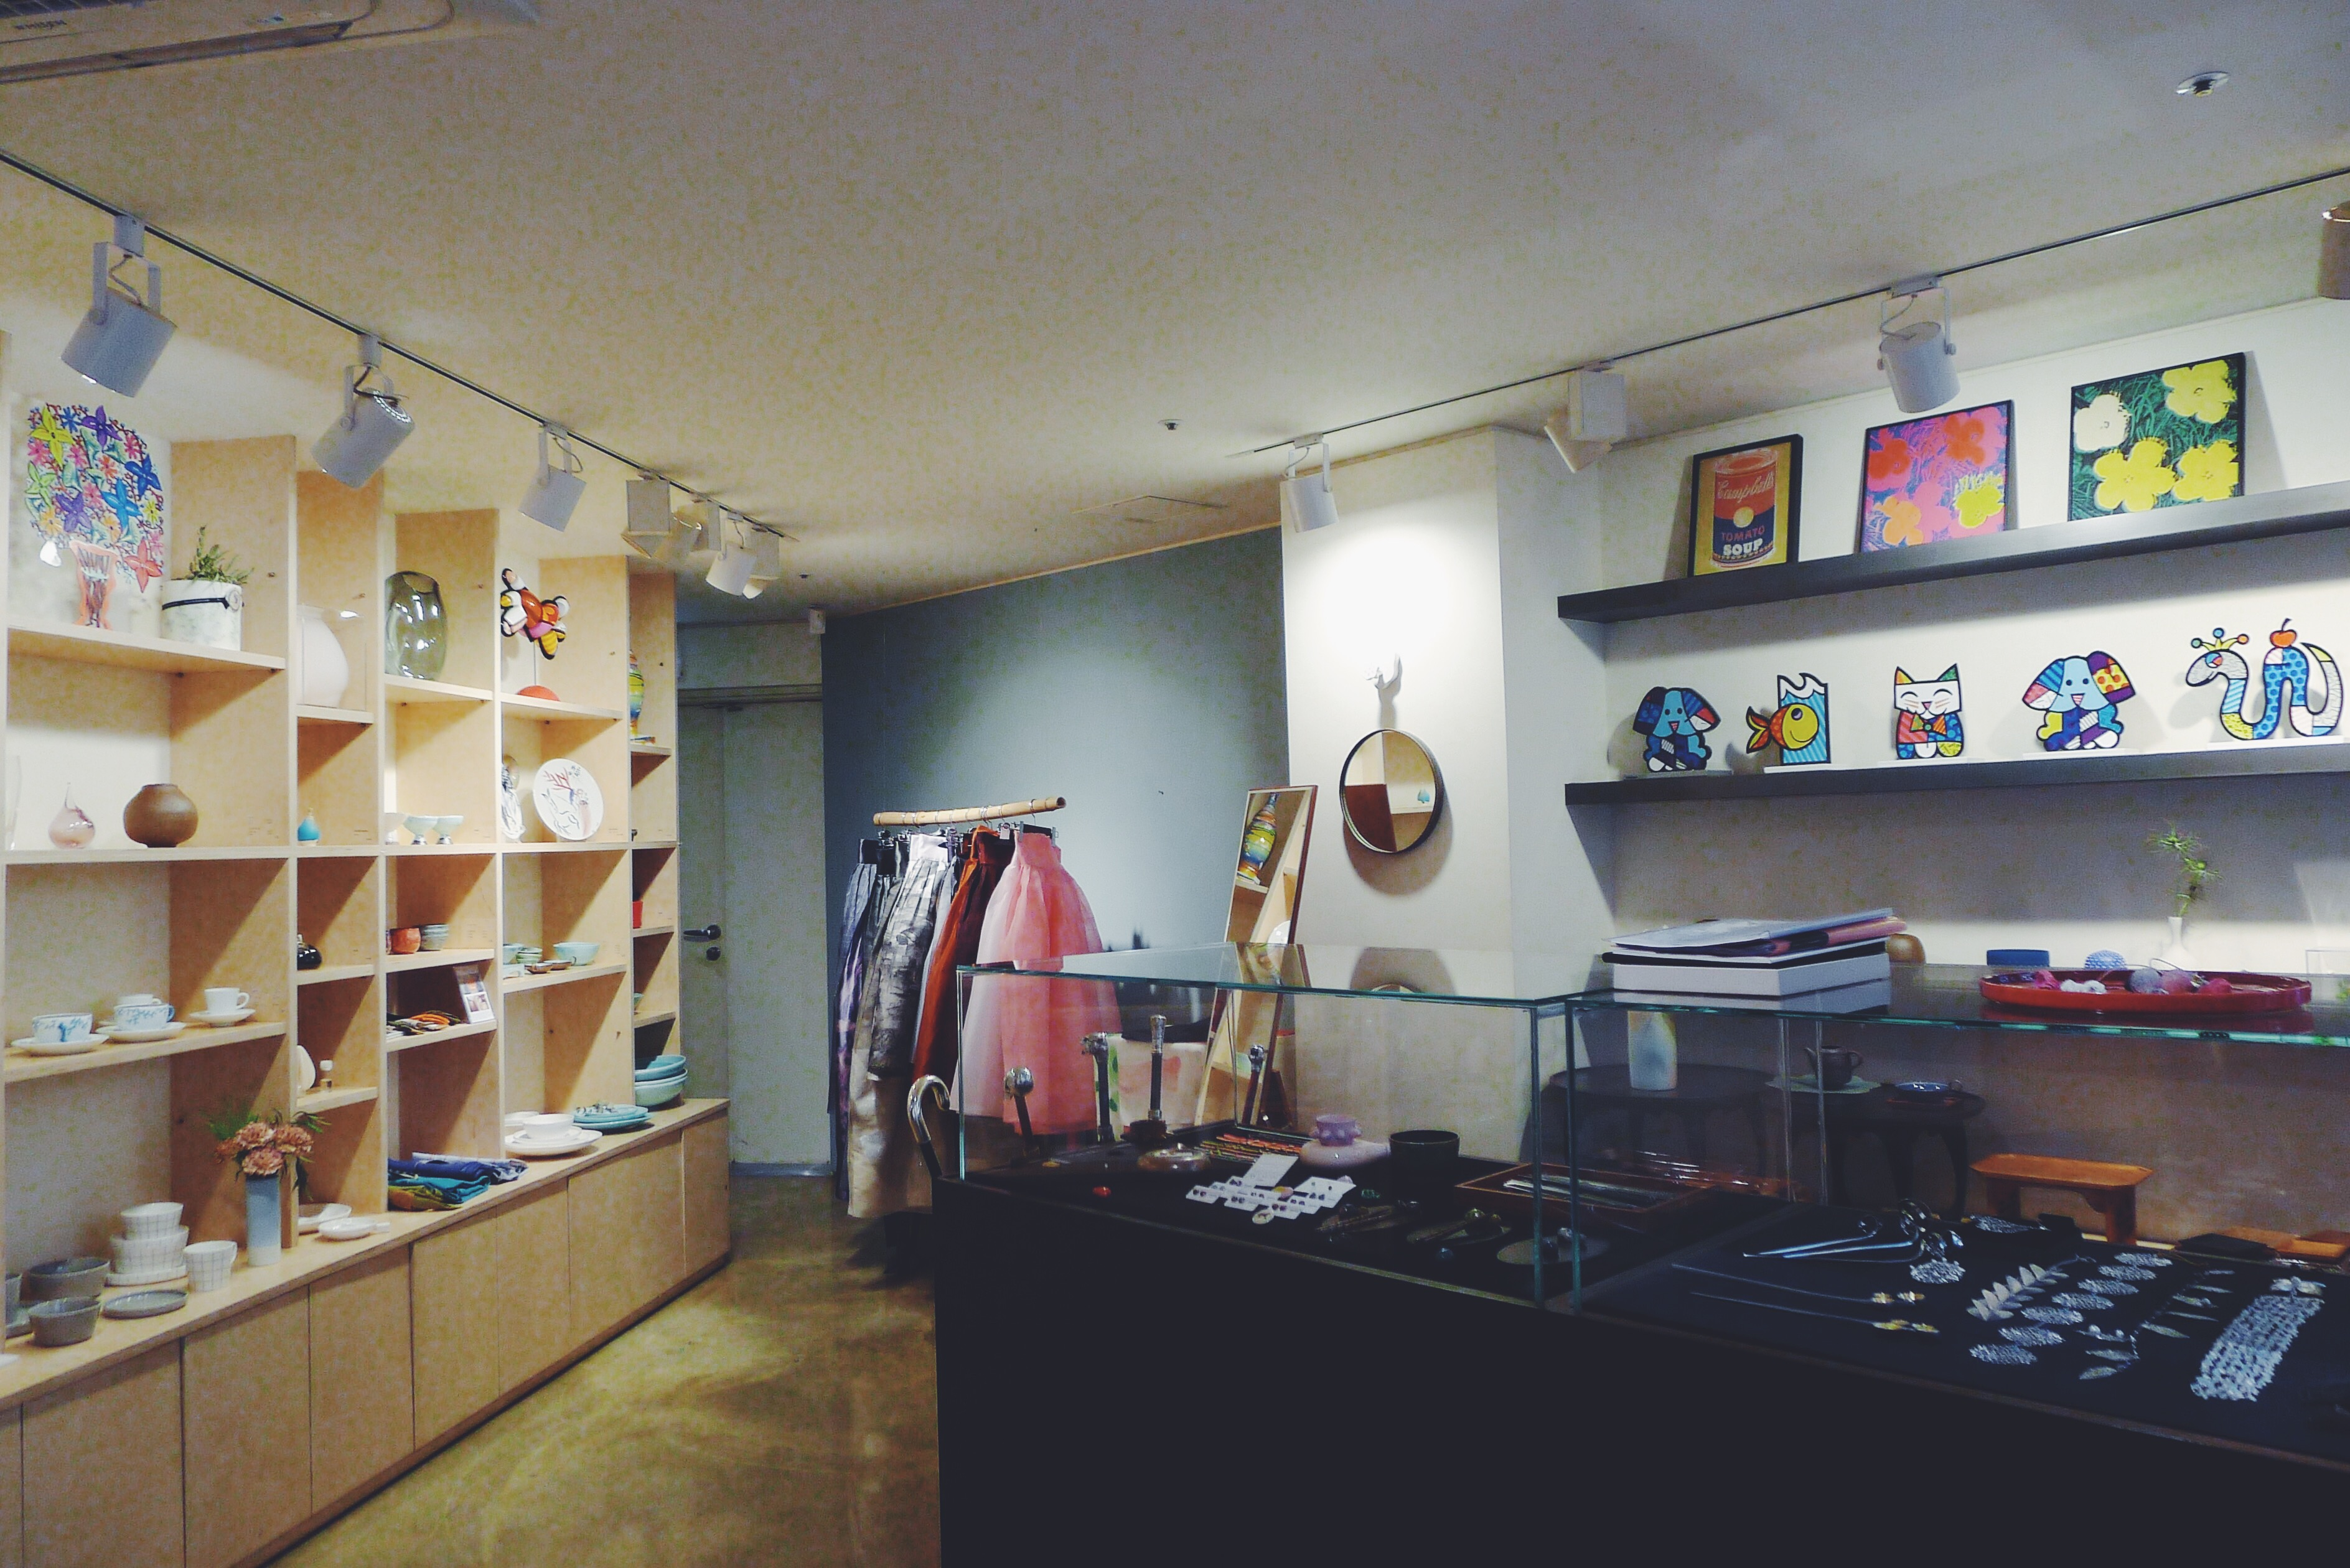 A small shop composed of Korean arts and crafts located on the basement floor